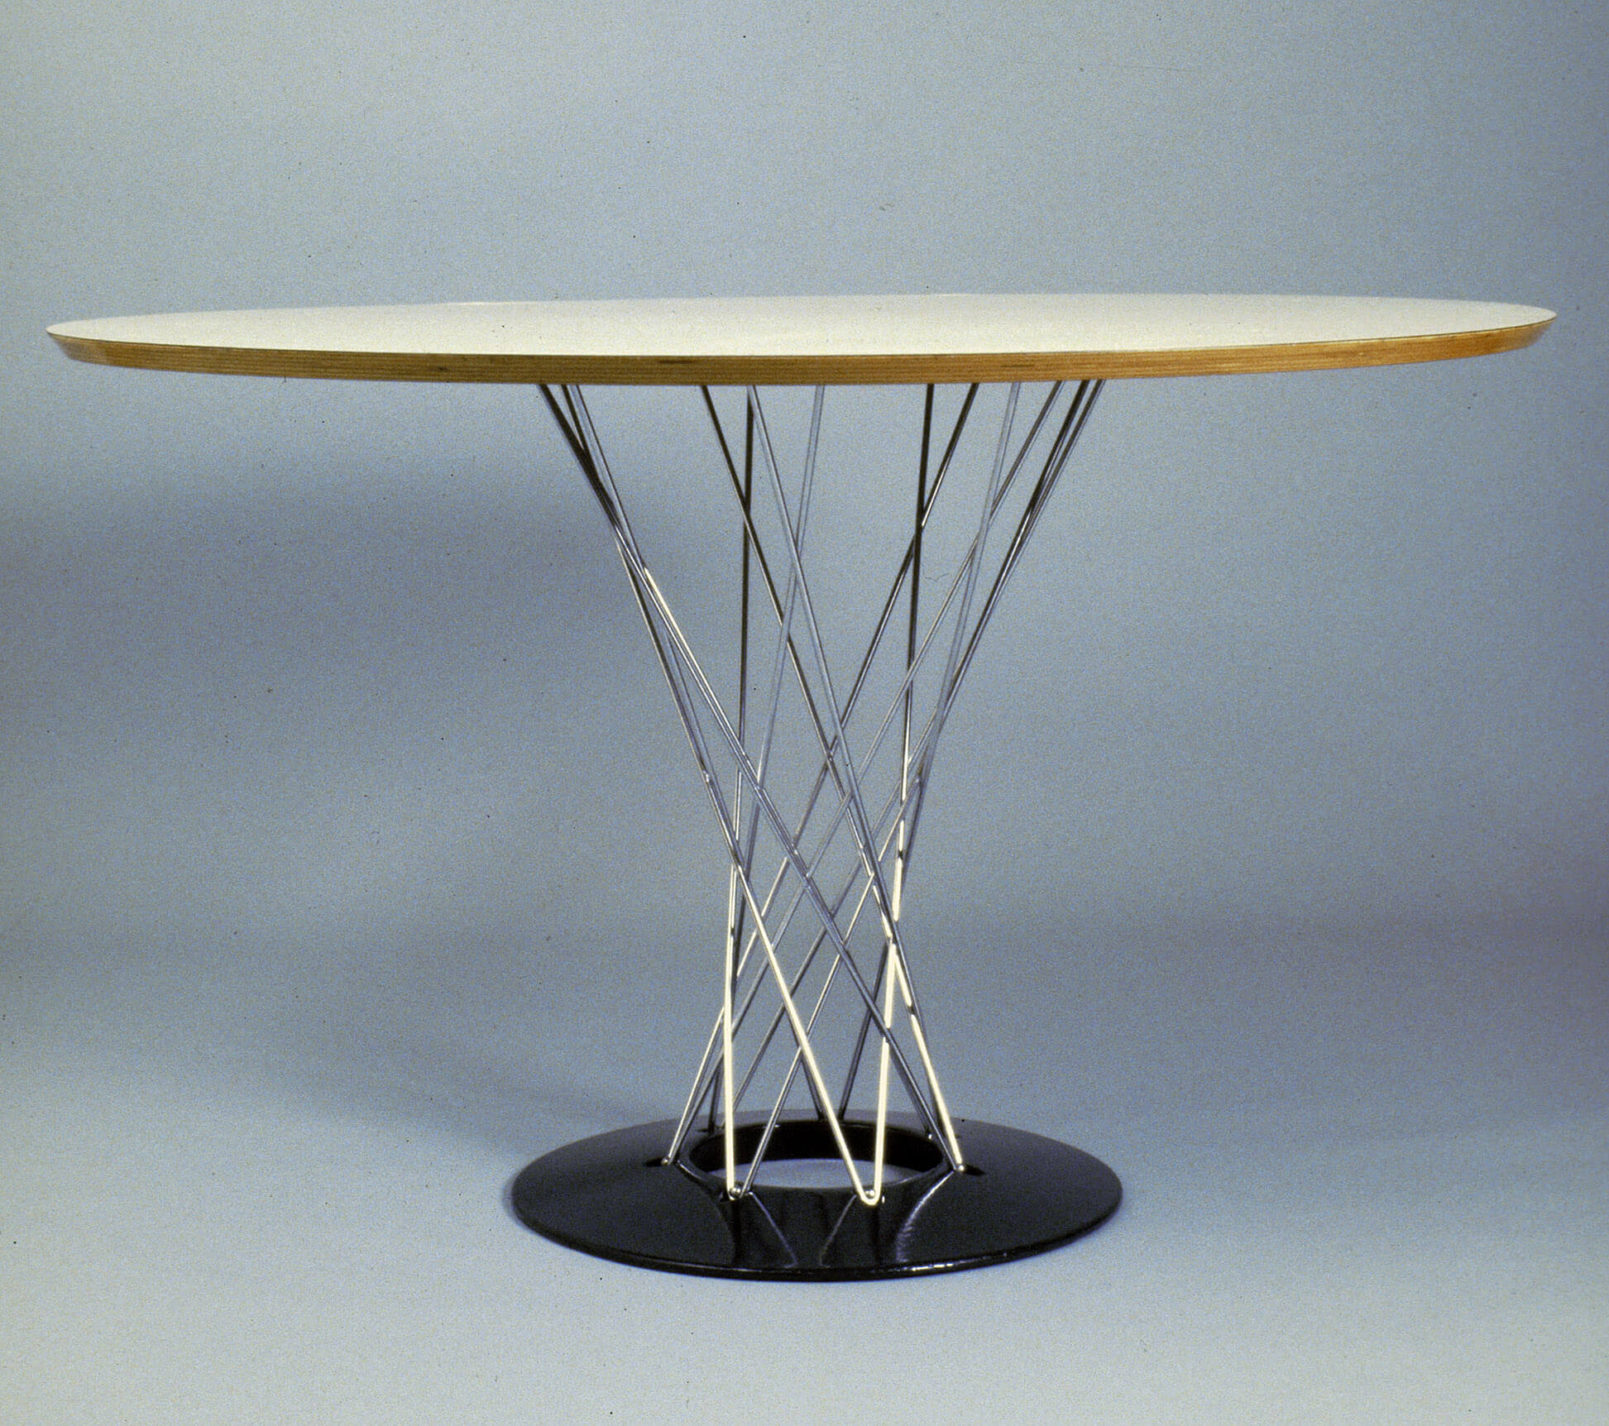 Circular table with white surfaced and wood-edged top on a crisscrossing steel wire and black disc base.